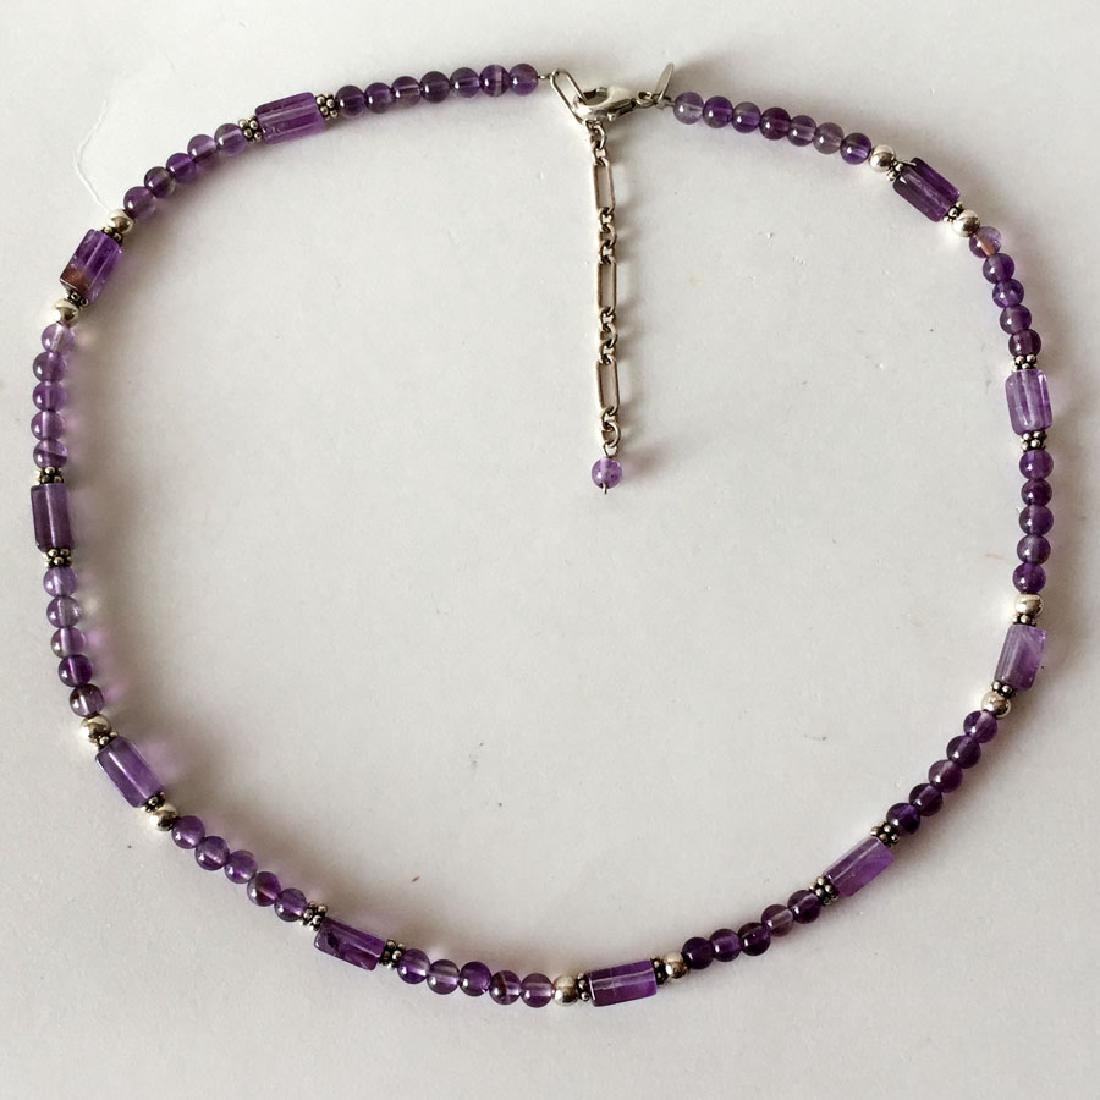 Genuine amethyst and sterling silver beads, spacers,